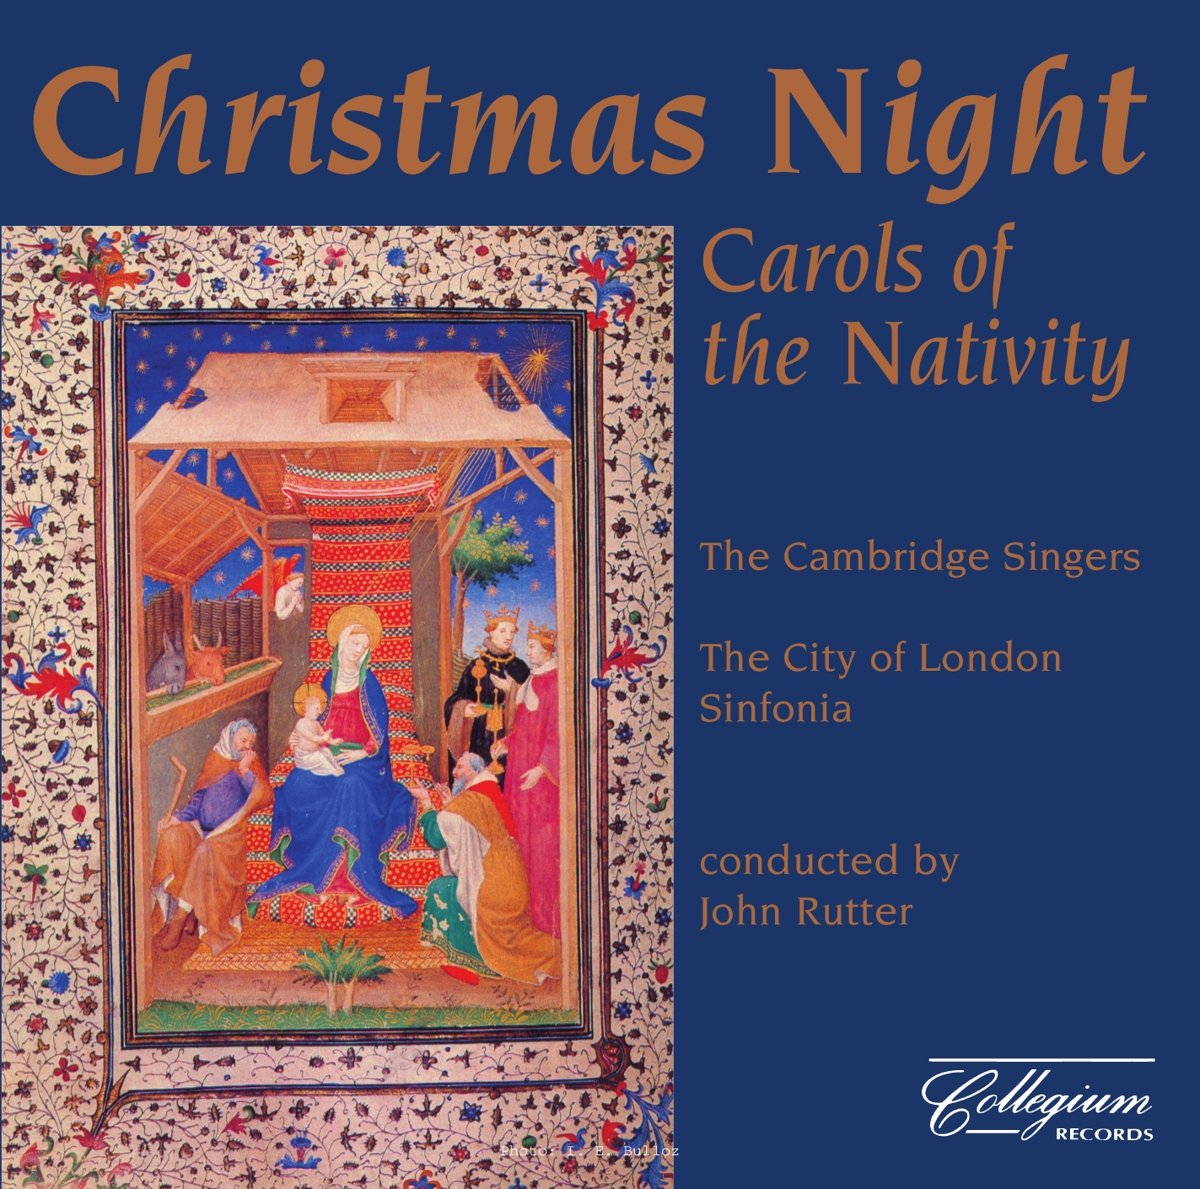 The Cambridge Singers, John Rutter, Harold Edwin Darke/Herbert ...